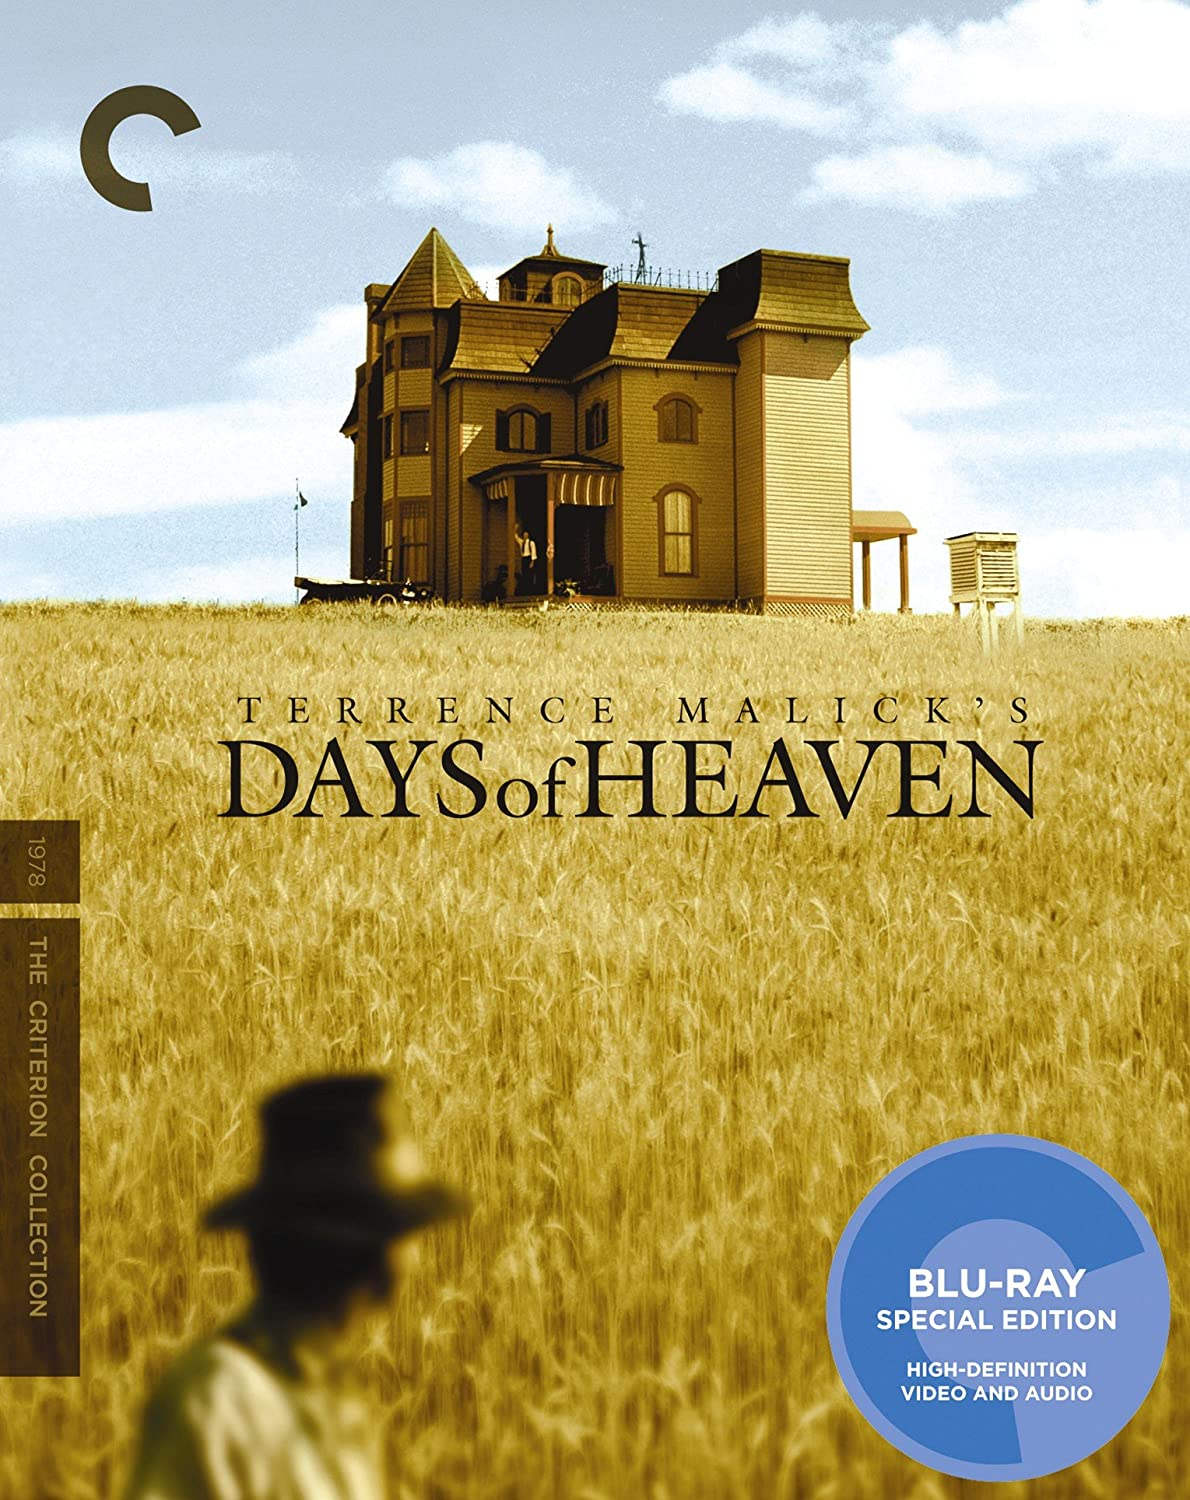 Amazoncom Days Of Heaven The Criterion Collection Bluray - Man filmed this heaven for 7 days